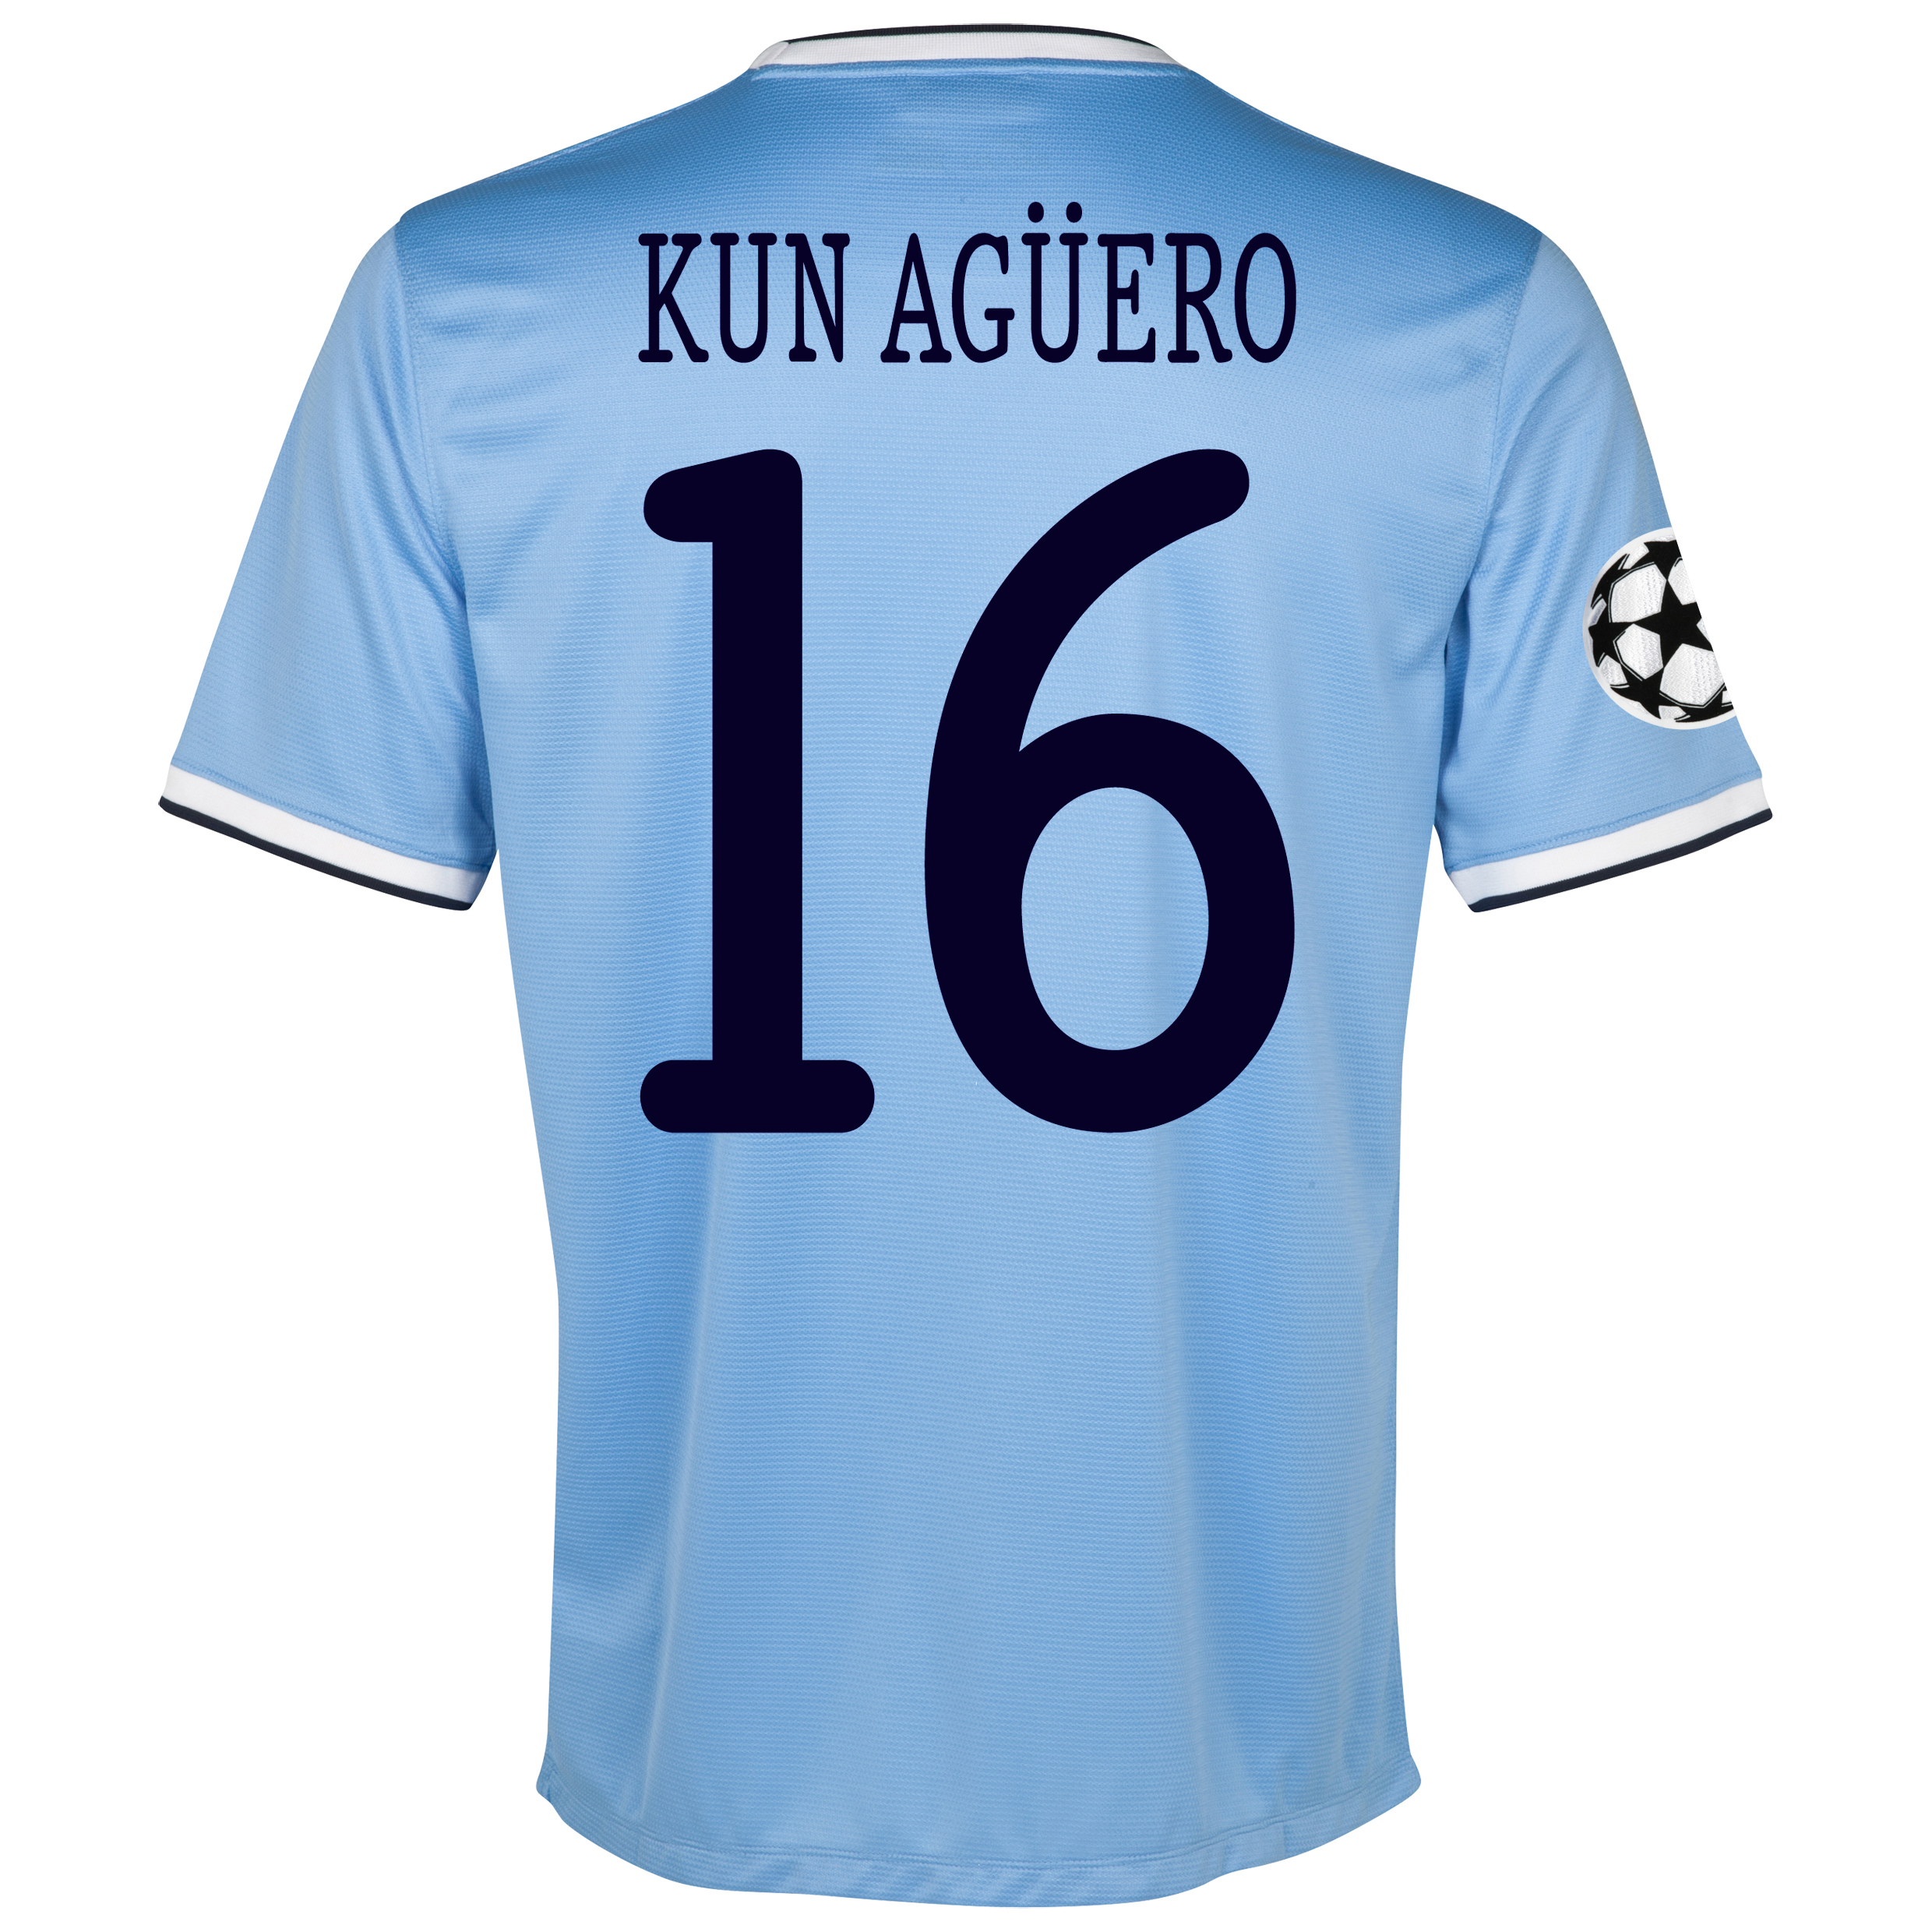 Manchester City UEFA Champions League Home Shirt 2013/14 with Kun Agüero  16 printing